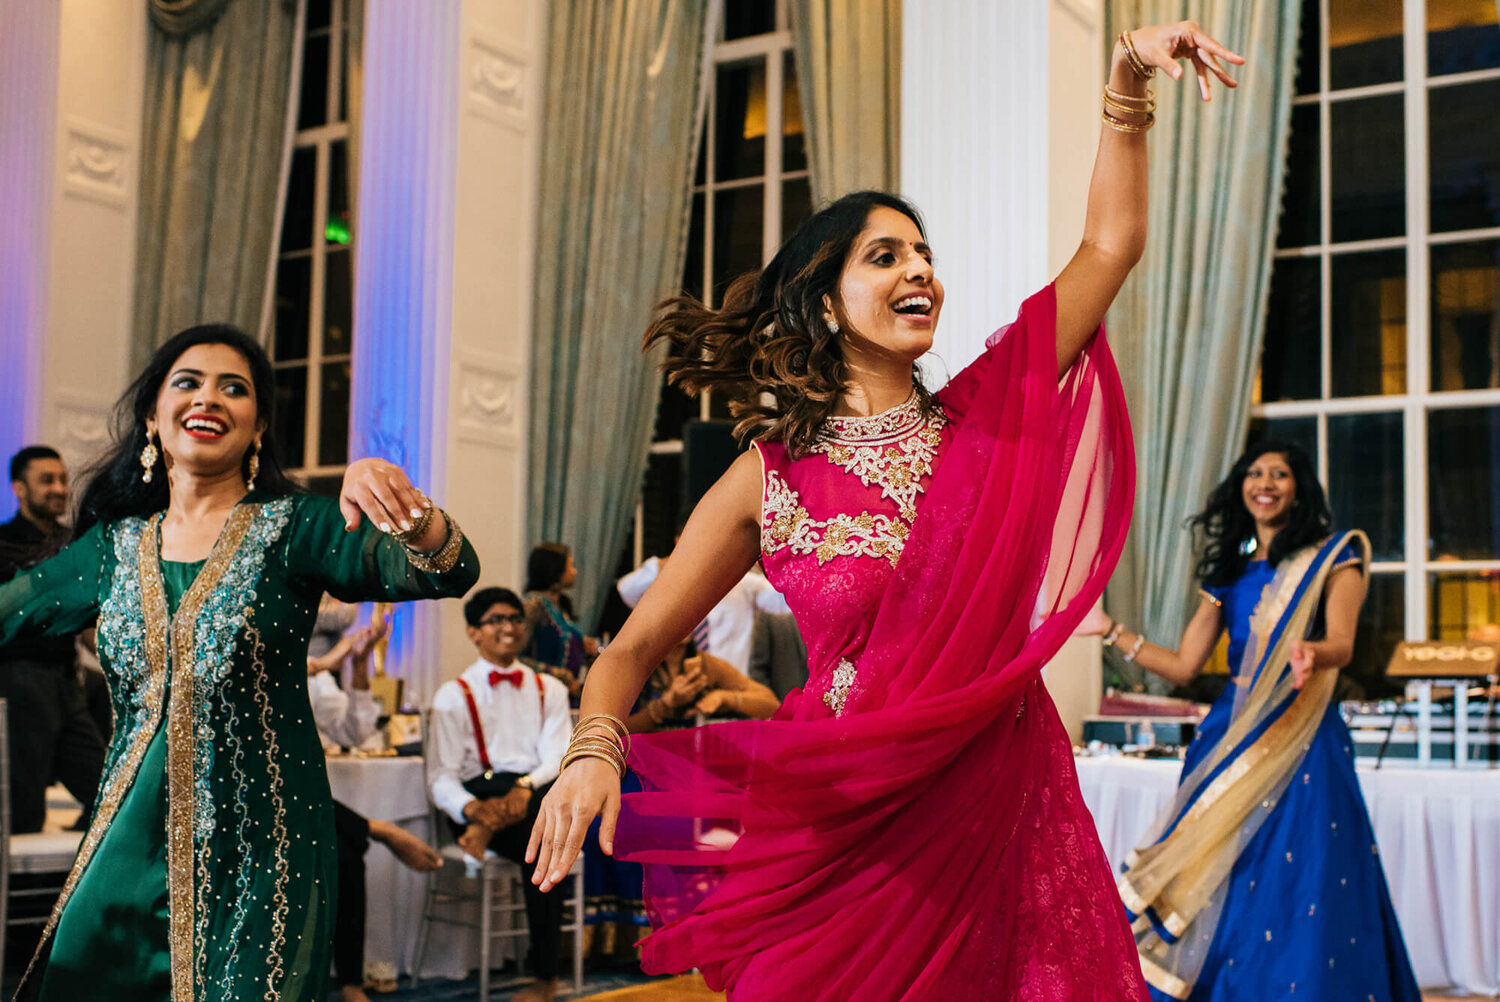 25-indian-wedding-marriot-grand-st-louis-mo-dancing.jpg